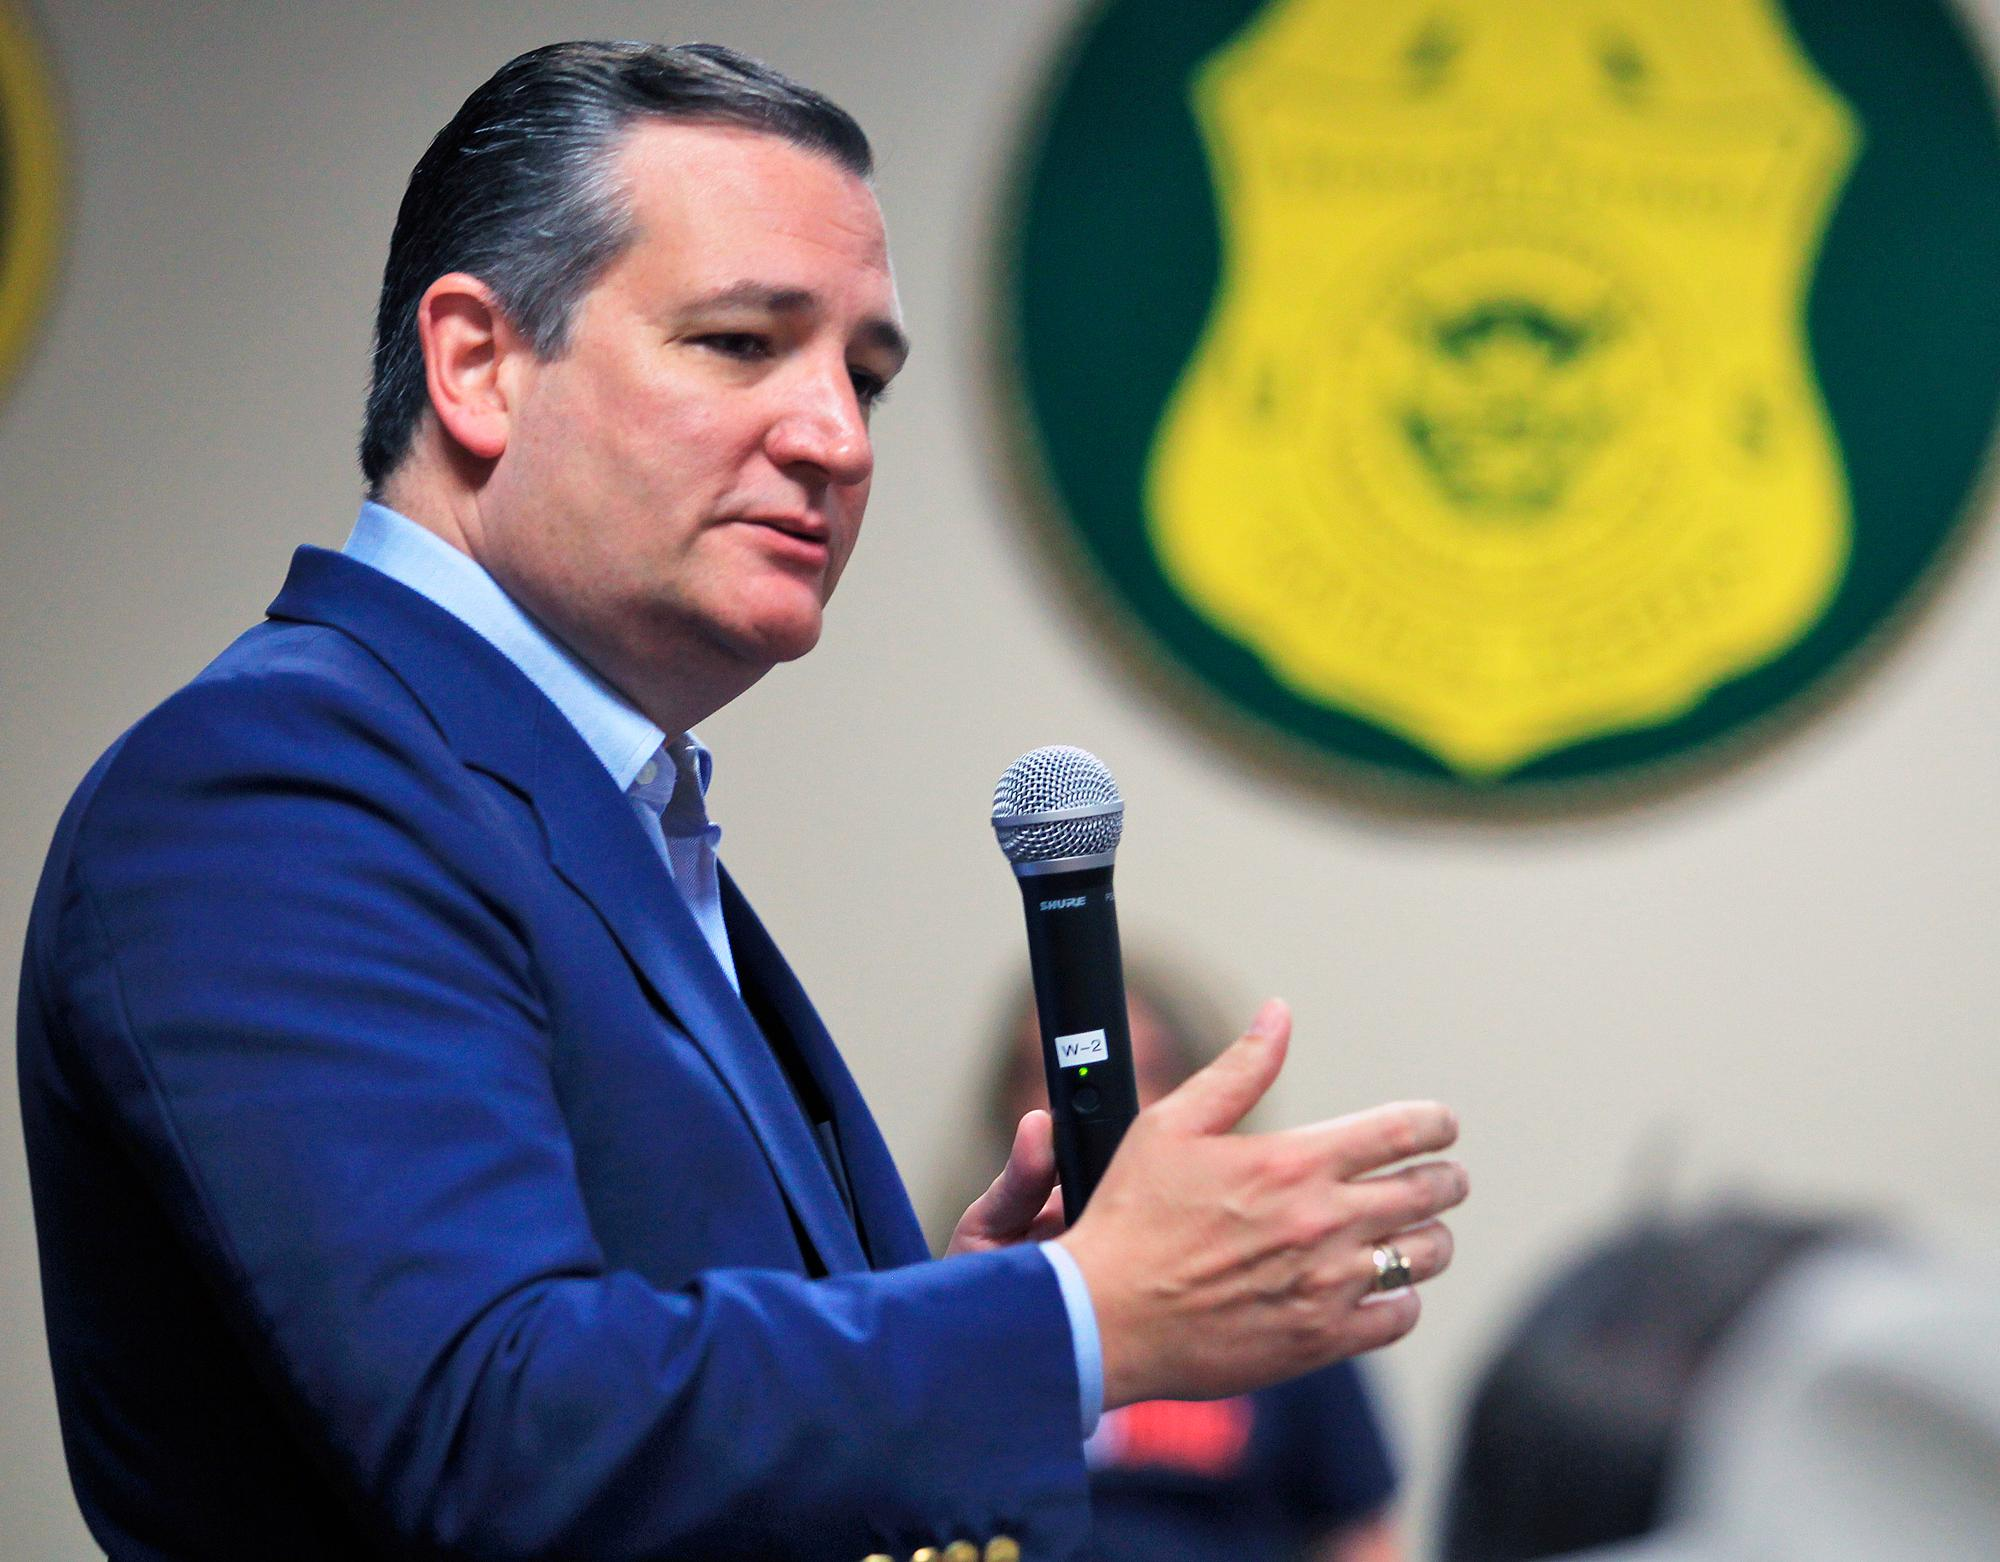 FILE - In this April 3, 2018, file photo, U.S. Senator Ted Cruz, R-Texas, speaks to supporters as he campaigns for re-election at the National Border Patrol Council Local 3307 offices in Edinburg, Texas. (Joel Martinez/The Monitor via AP, File)